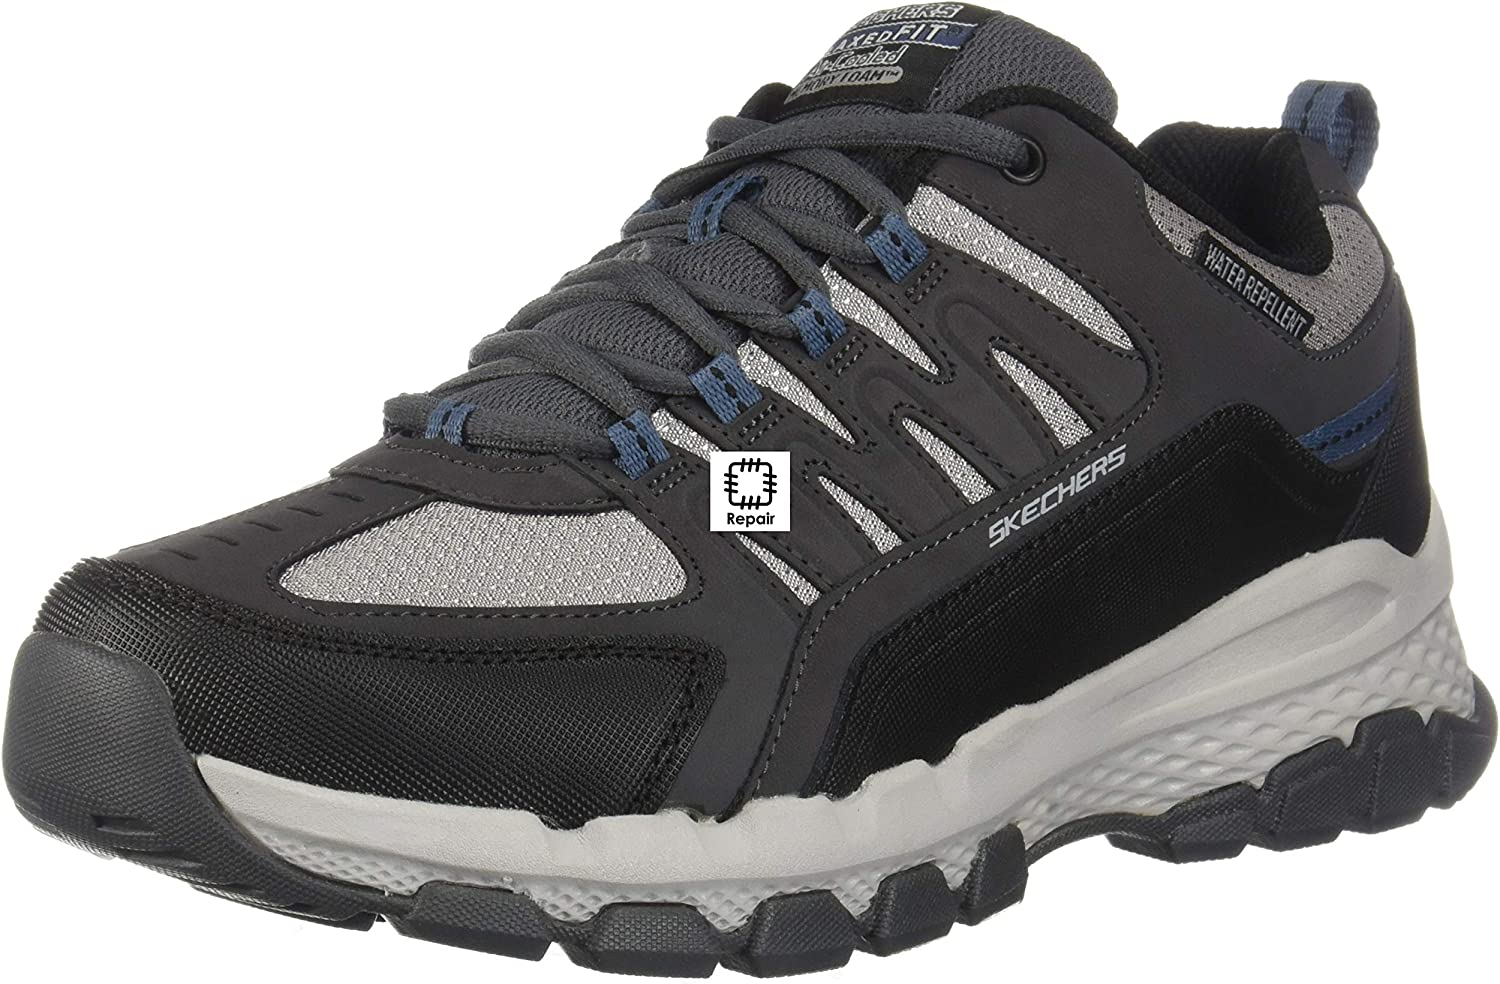 Men's Outland 2.0 Rip-Staver Charcoal